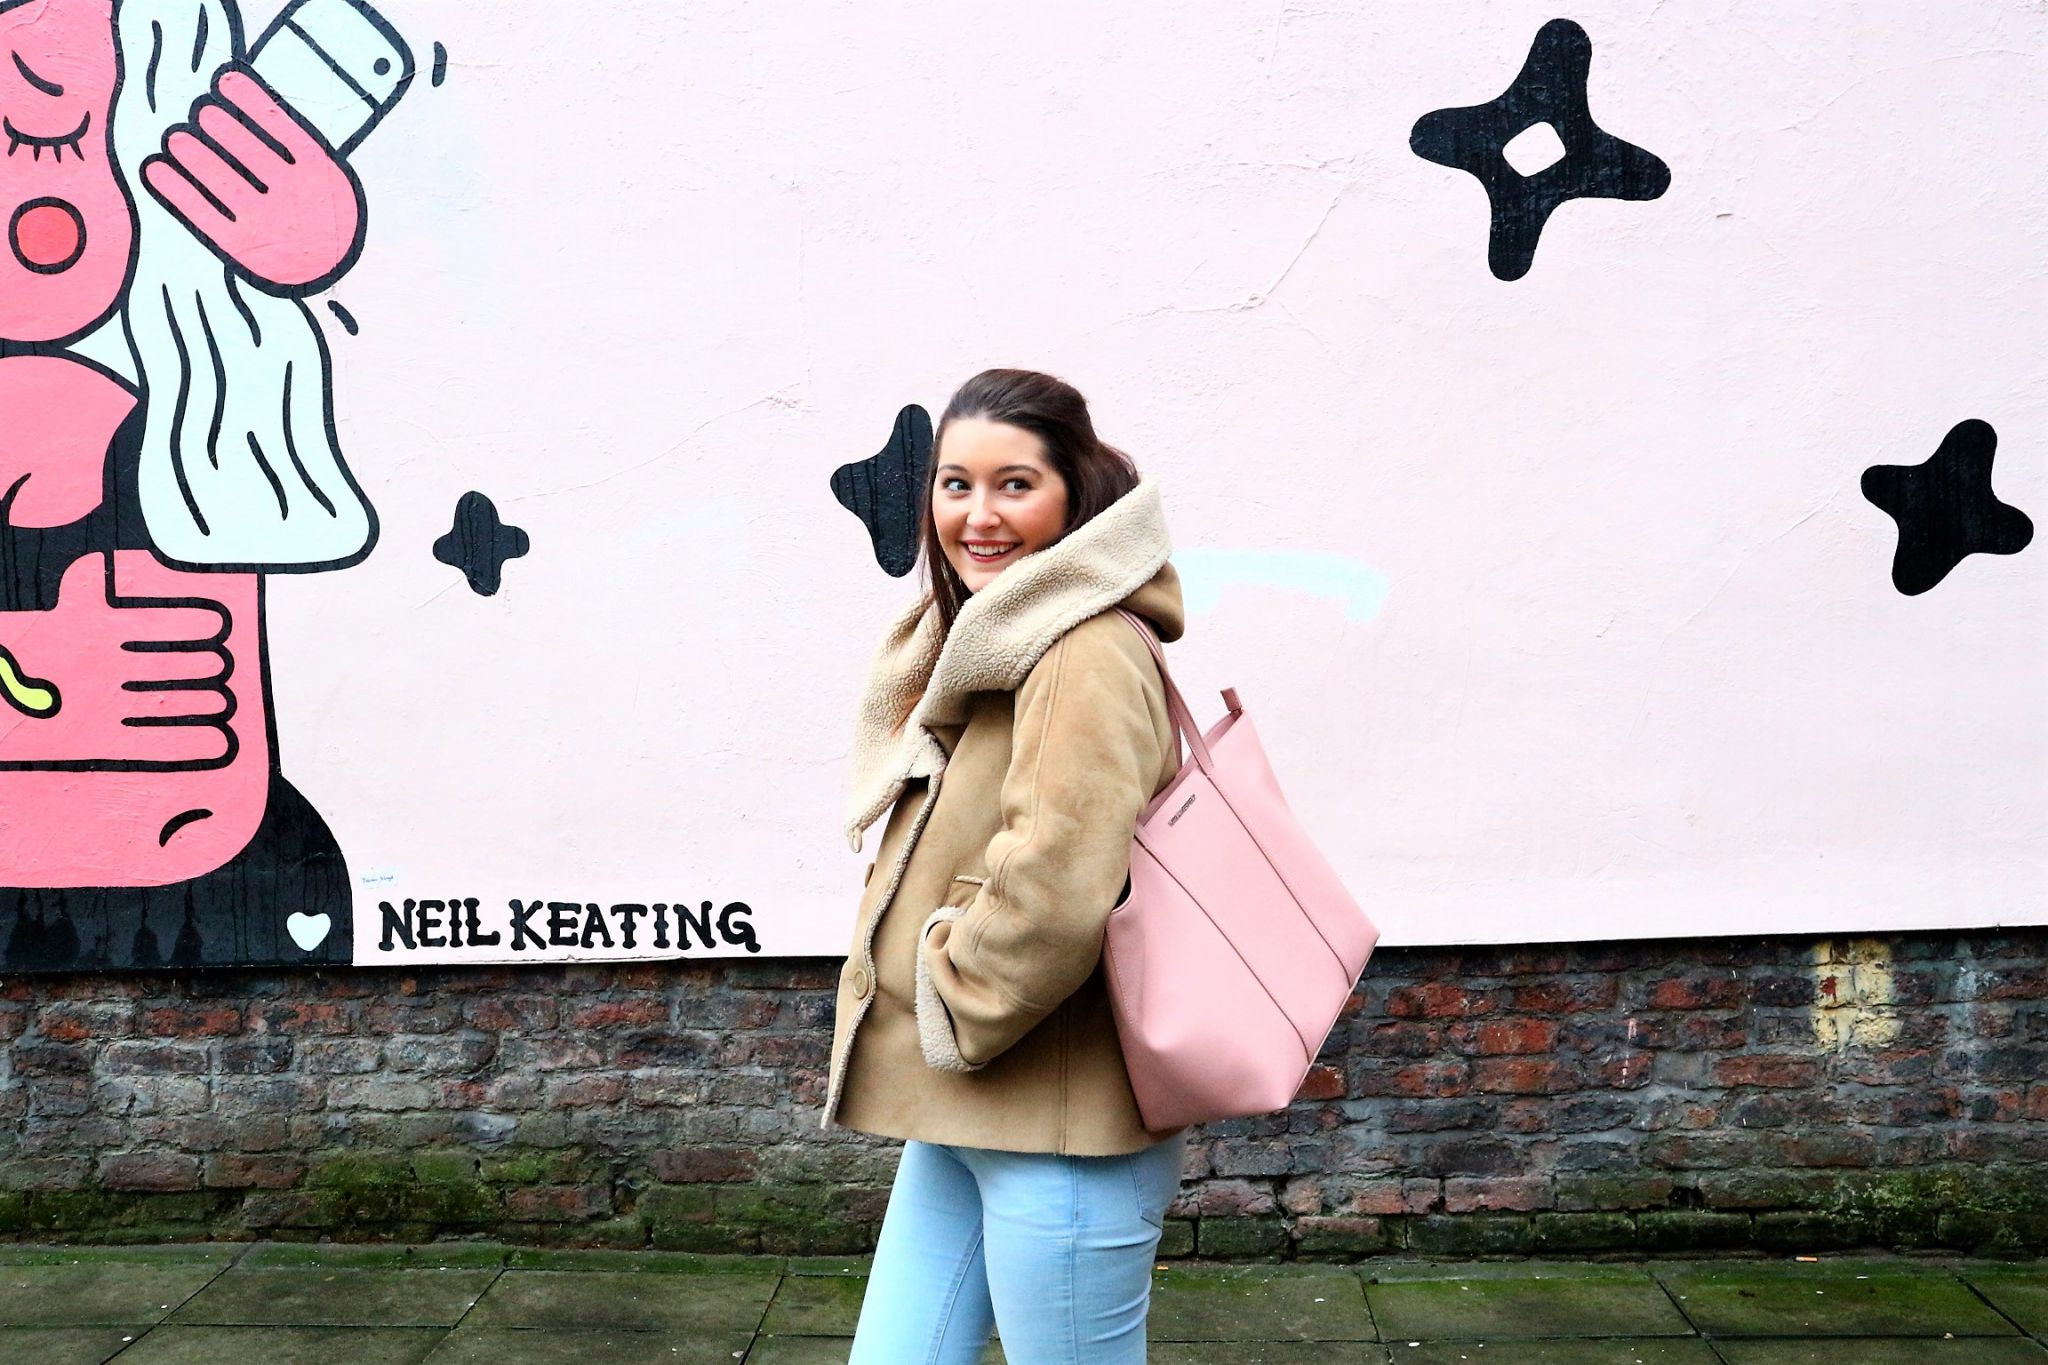 UK Blogger. Lifestyle Blogger. Stress Relief Advice. Liverpool Life. Karl Lagerfeld Bag. Street Style Fashion.